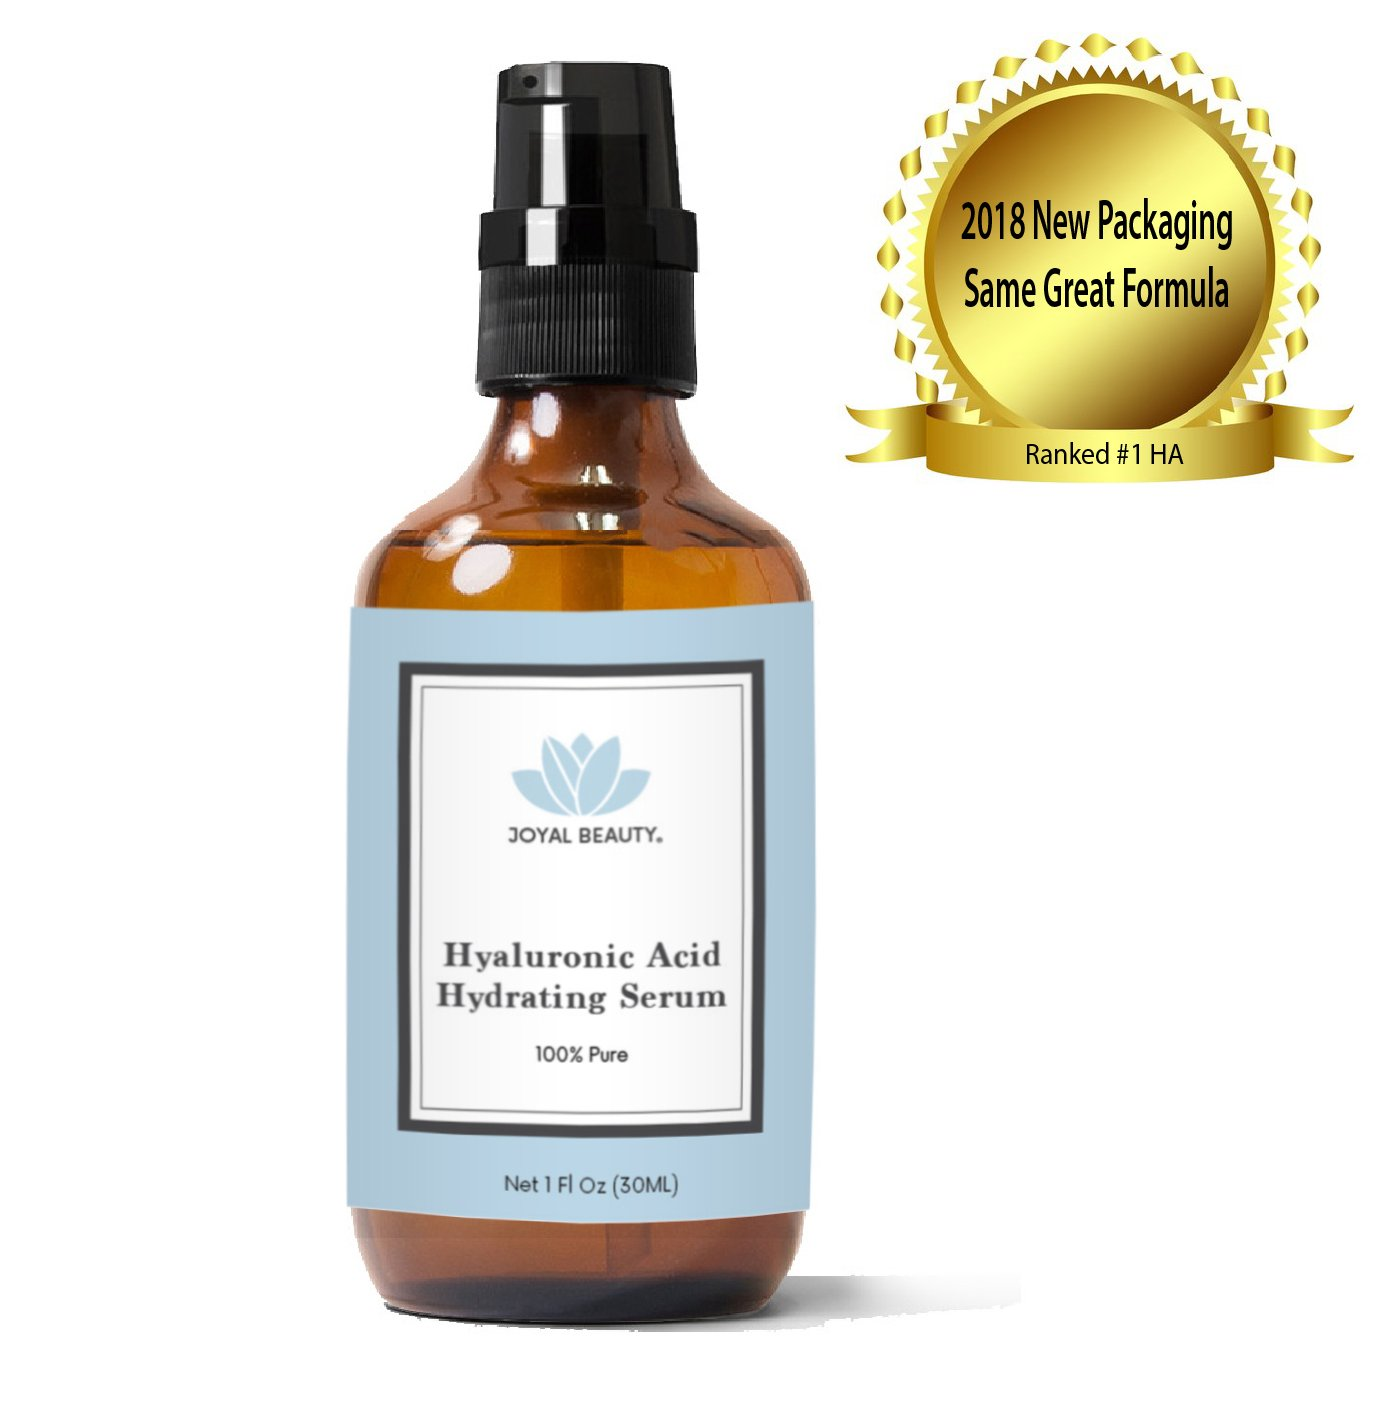 Joyal Beauty 100% Pure Best Hyaluronic Acid Serum for Face Skin Eyes Lips. Anti-aging Hydrating Original Organic Hyaluronan for Topical Use. Daily Deep Dermal Hydration. Ranked Number 1 HA. 1 oz.